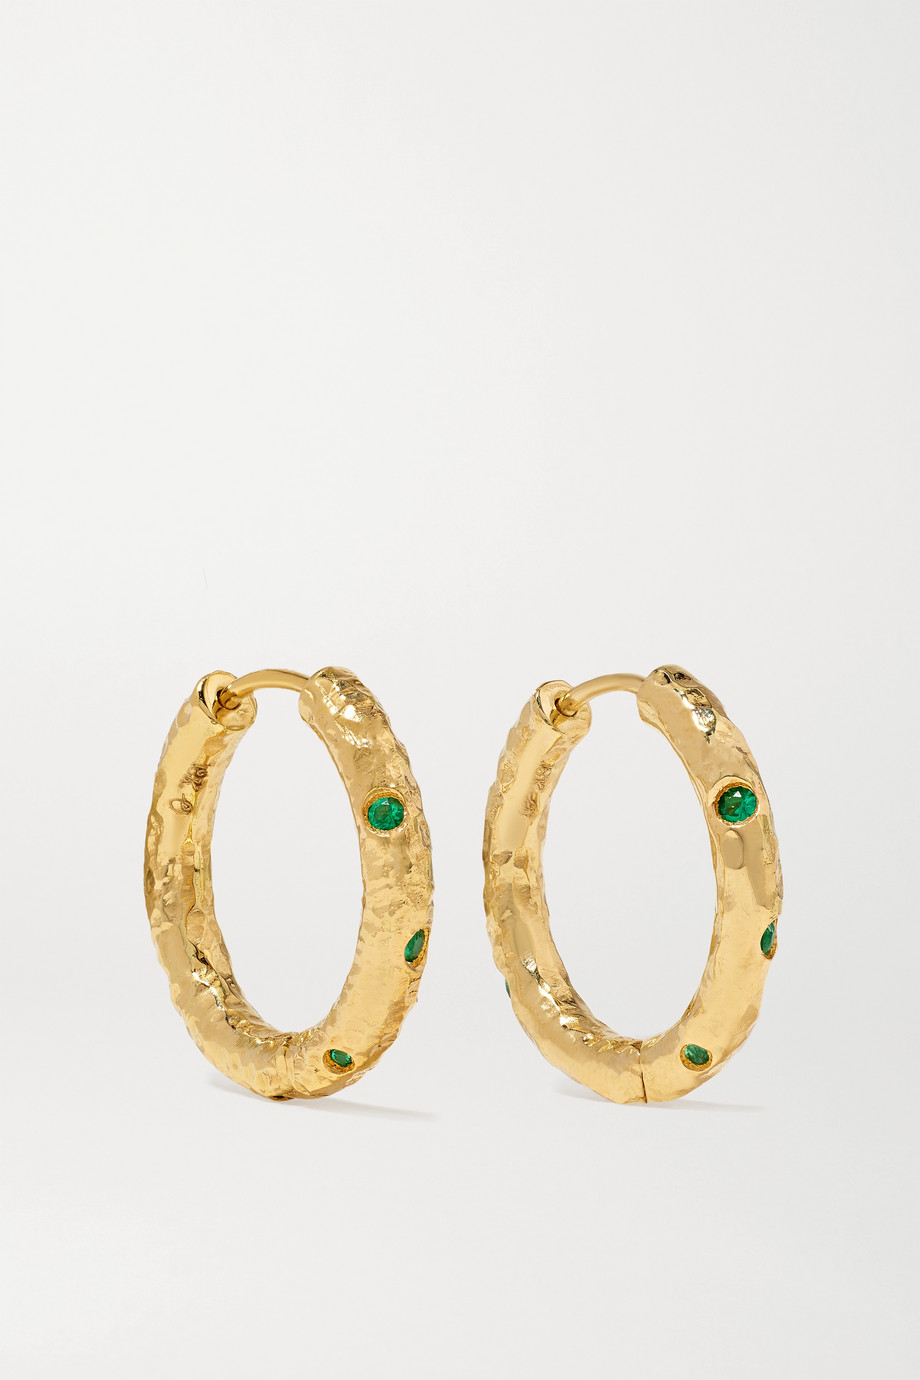 Octavia Elizabeth + NET SUSTAIN Nesting Gem Gabby 18-karat recycled gold emerald hoop earrings